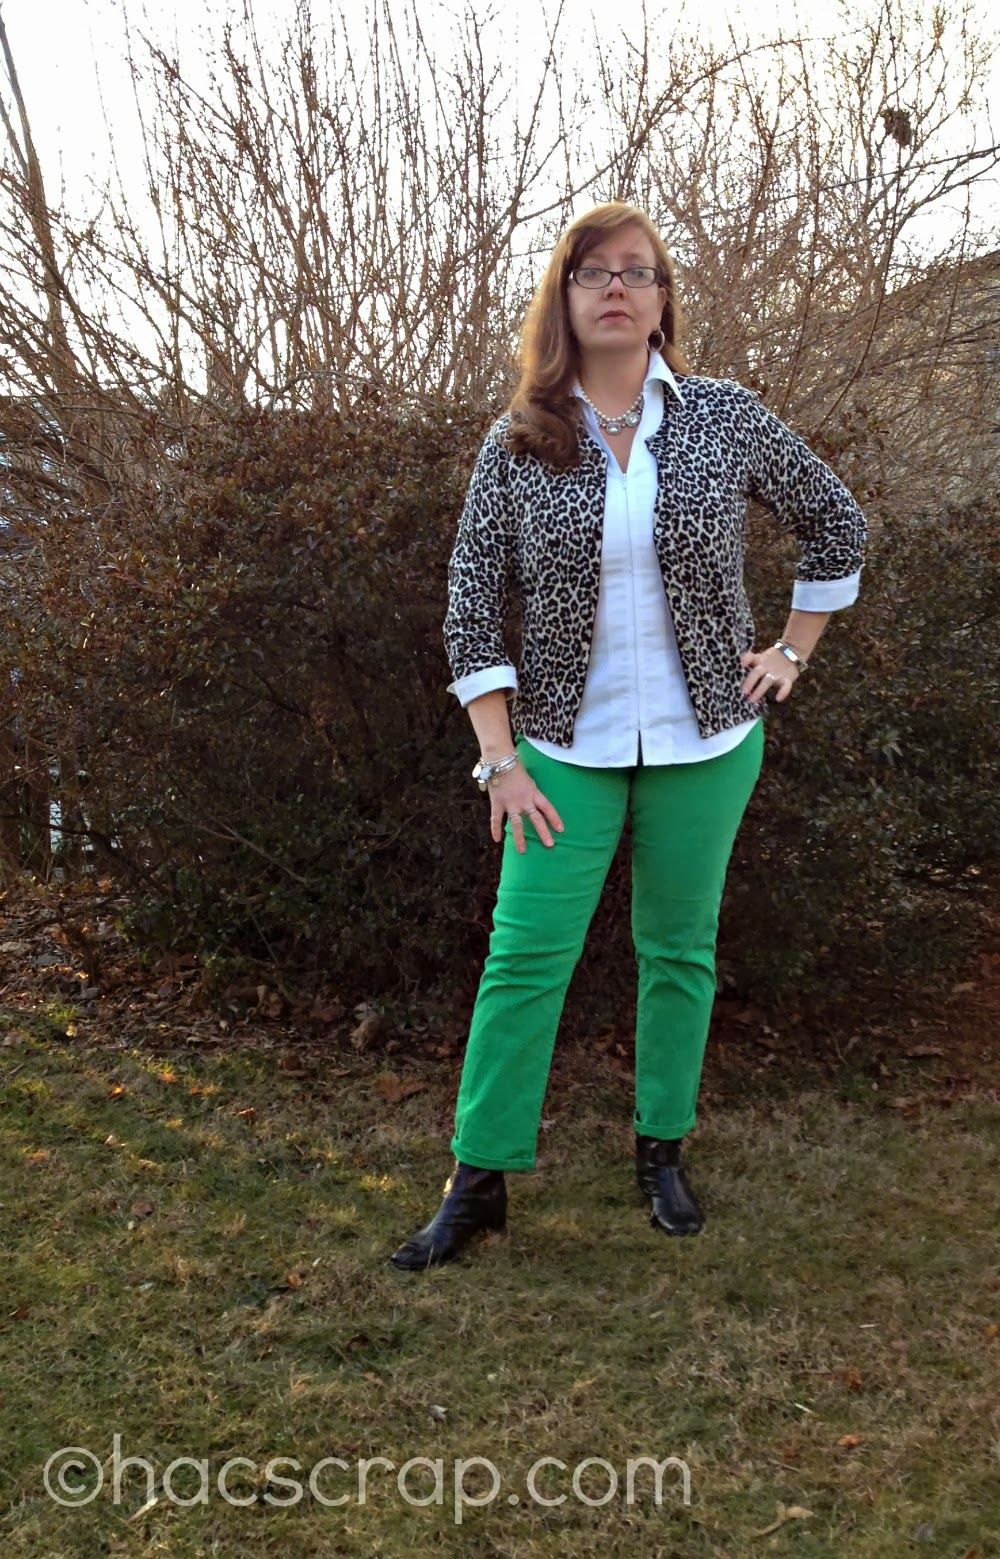 Green Jeans, White Shirt, Leopard Cardi